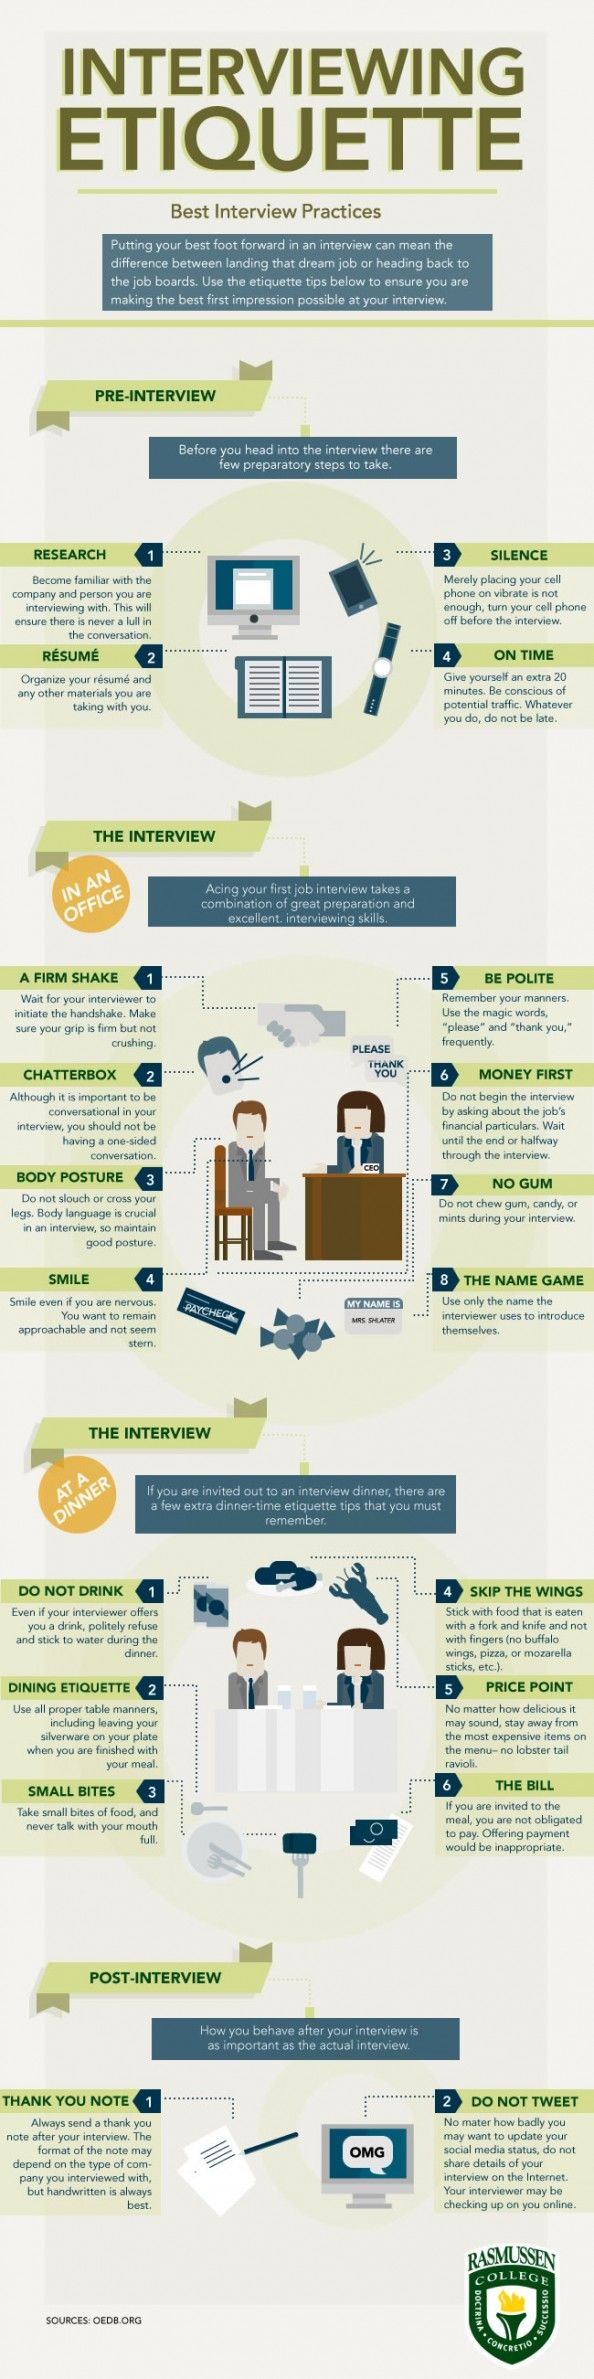 infographic interviewing etiquette use these etiquette tips for interviews to ensure you are making the best impression possible to your prospective